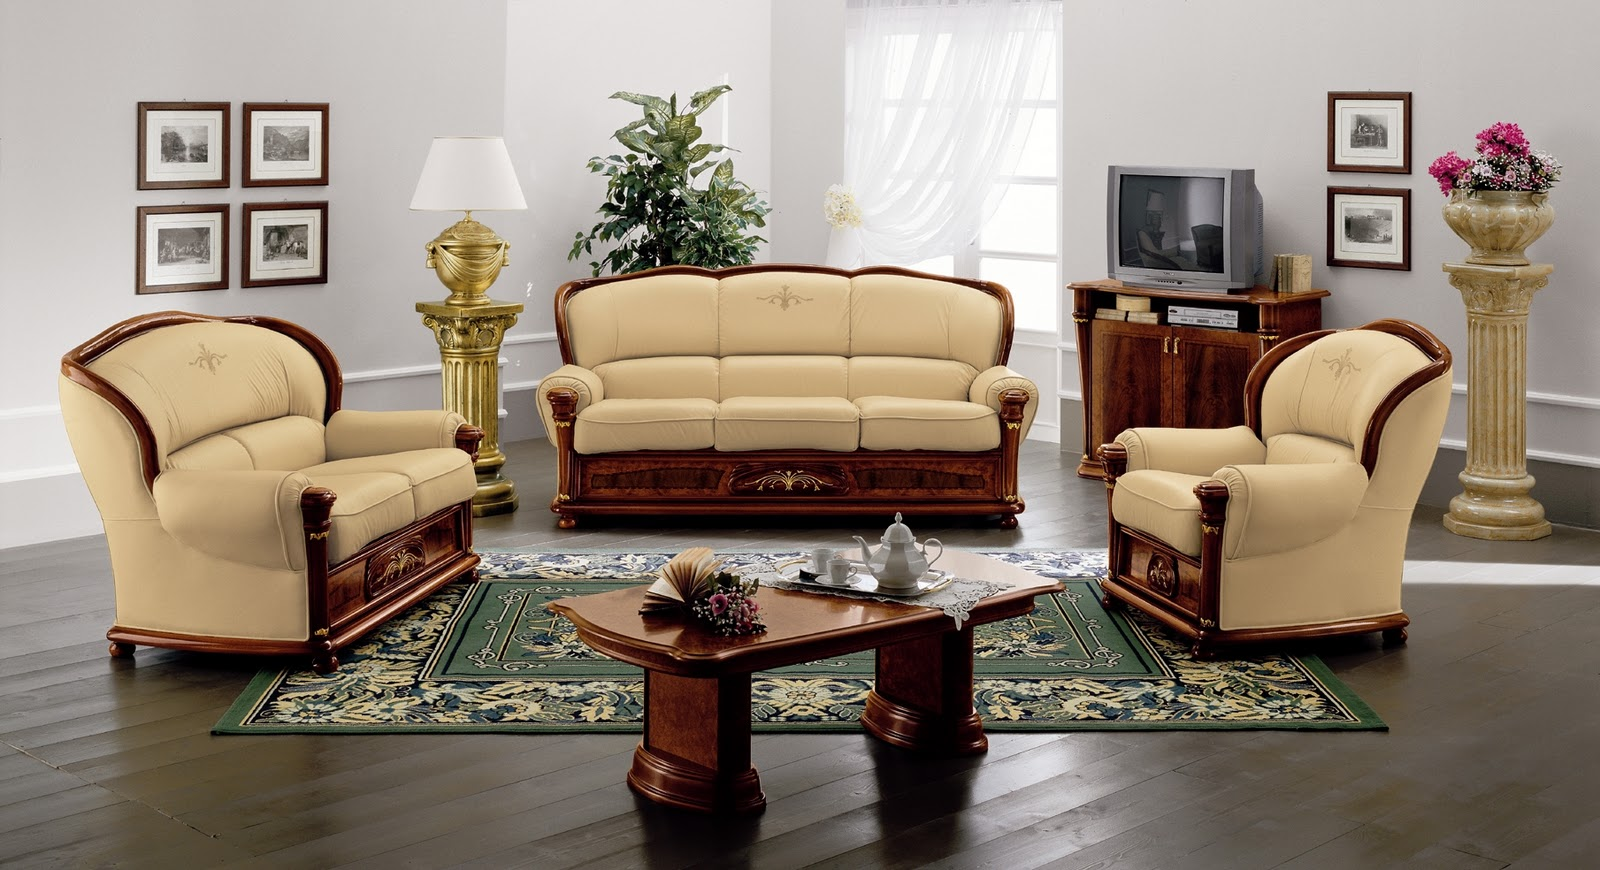 Living room sofa design photos living room interior designs for Hall furniture design sofa set